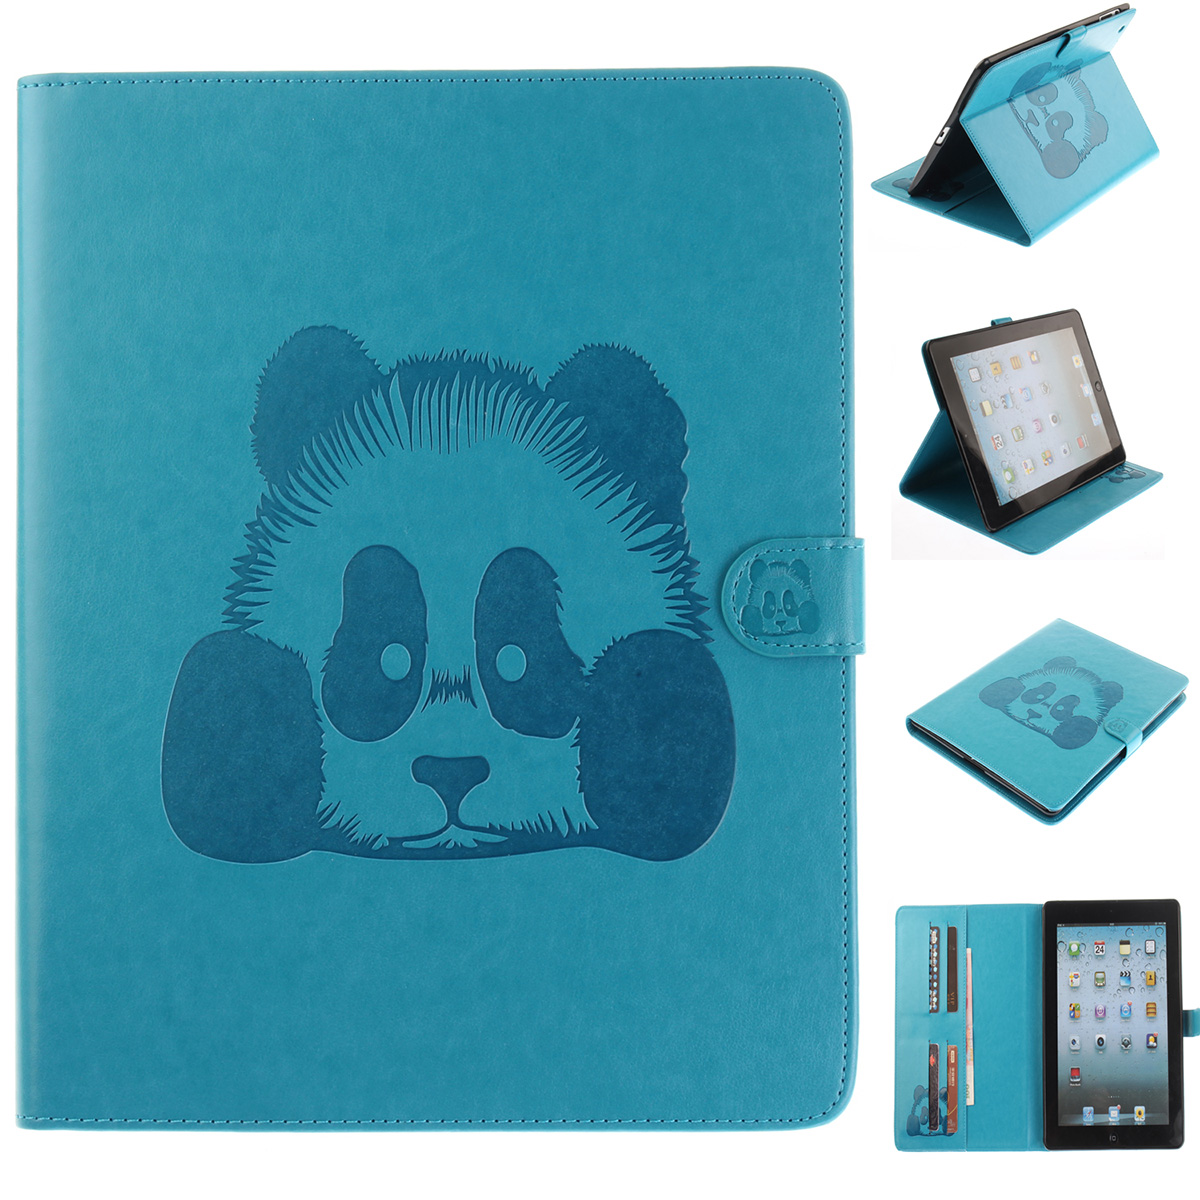 Original Brand Full Body Protective Case for Apple iPad 4 3 2 9.7'' Cartoon Luxury 3D Embossed Panda Smart Wake Up Sleep Cover allen bradley 1766 l32bwa new and original factory sealed have in stock